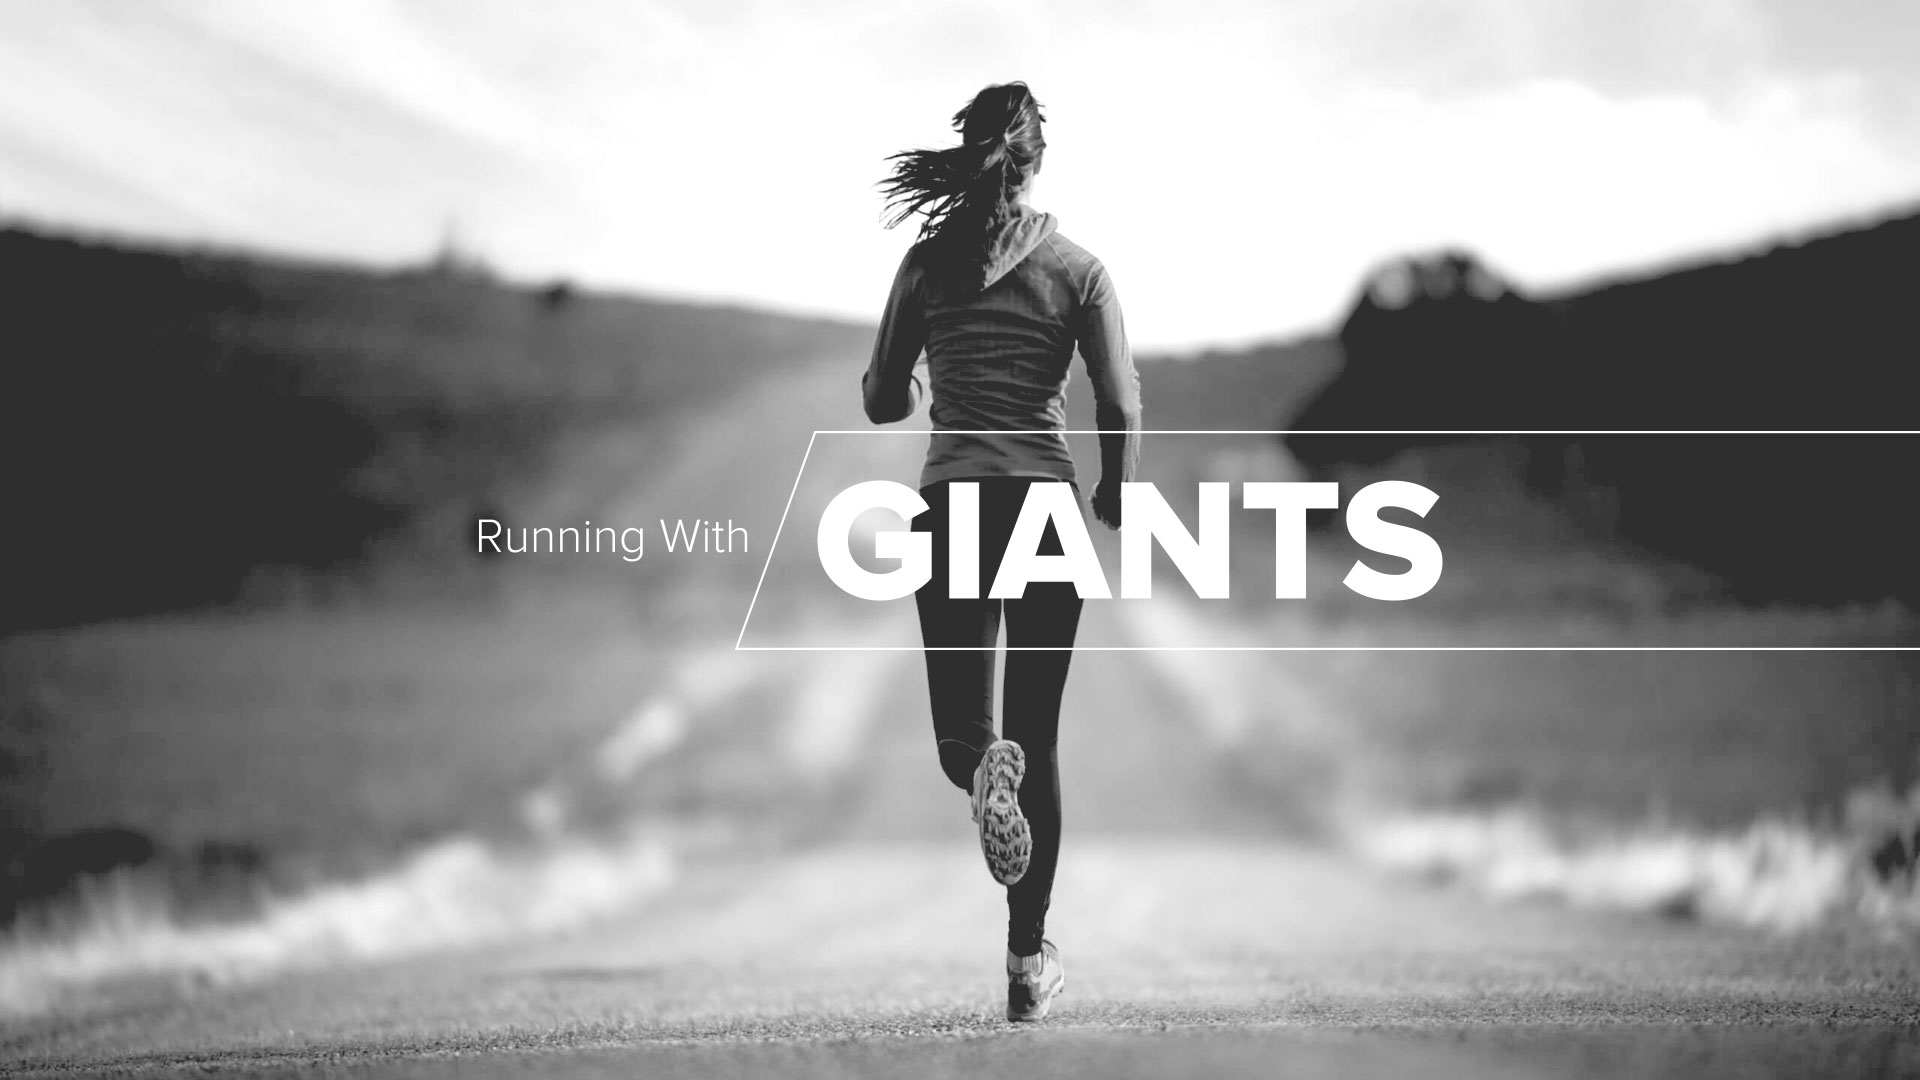 Running with Giants